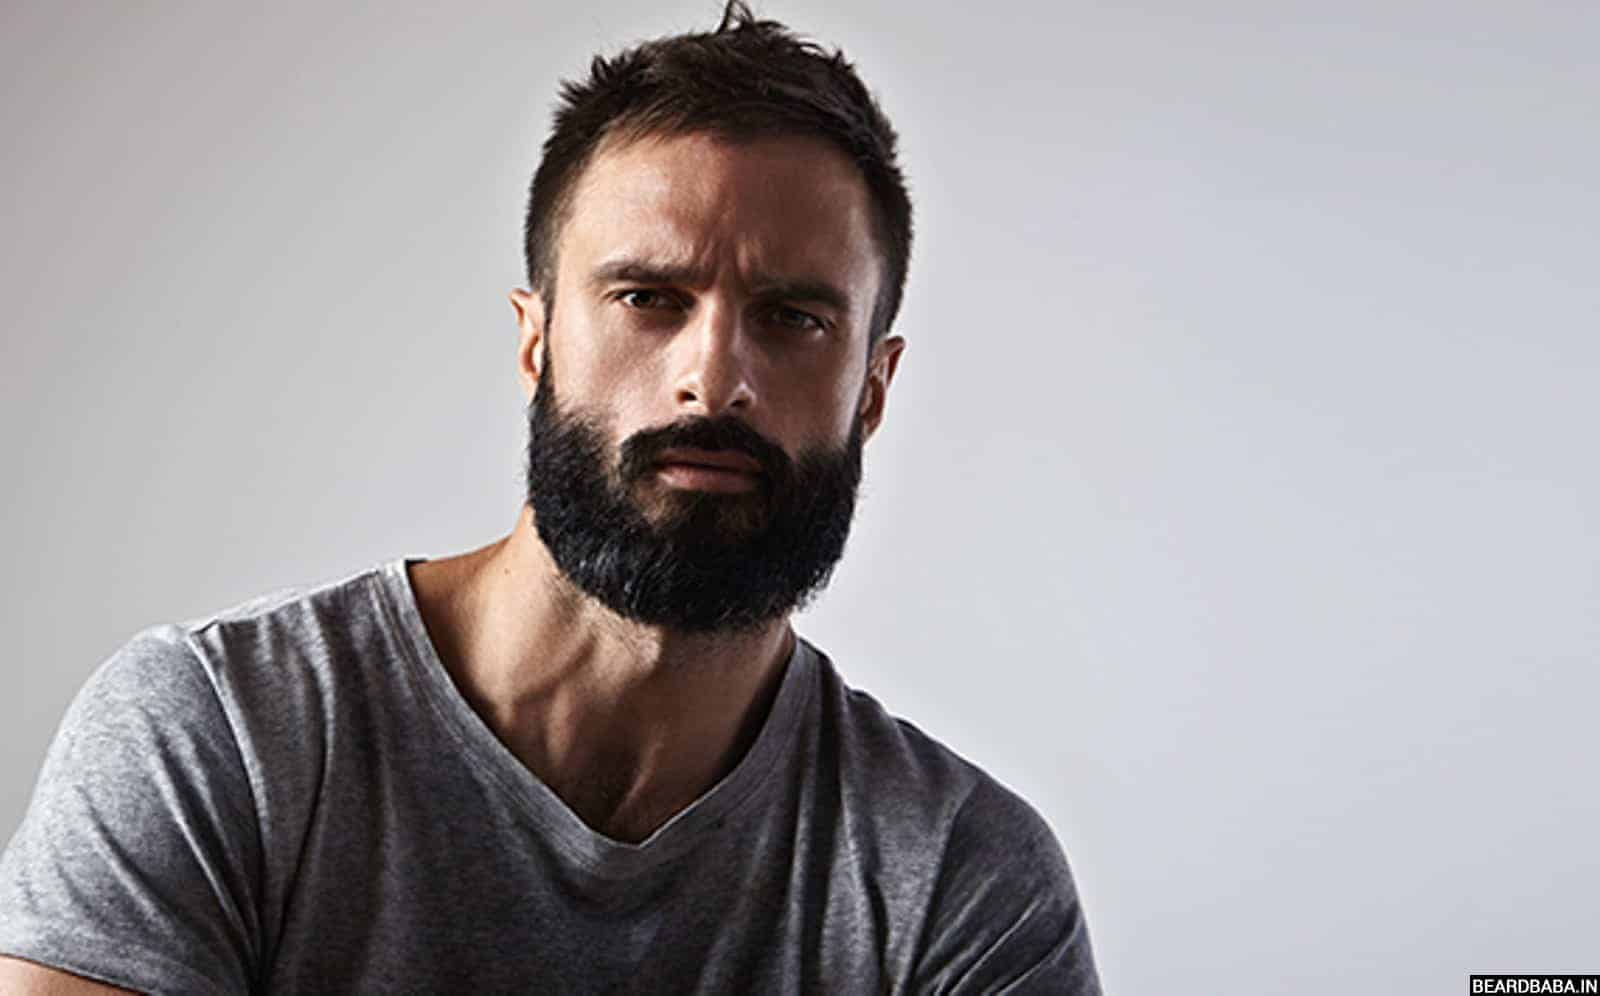 Beard Shape and Style for Round Faces: